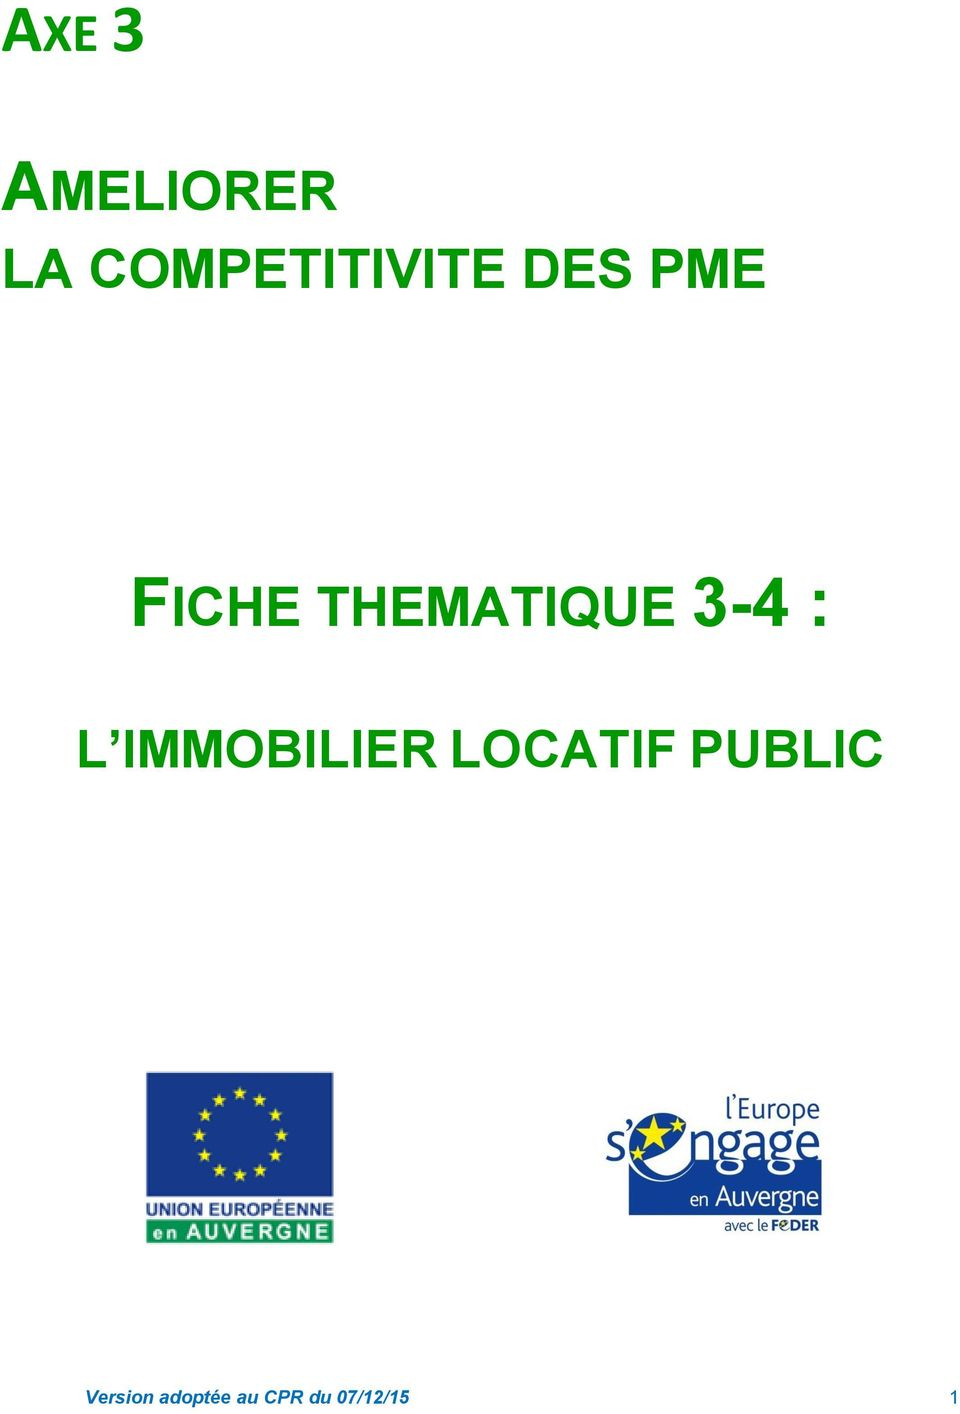 THEMATIQUE 3-4 : L IMMOBILIER